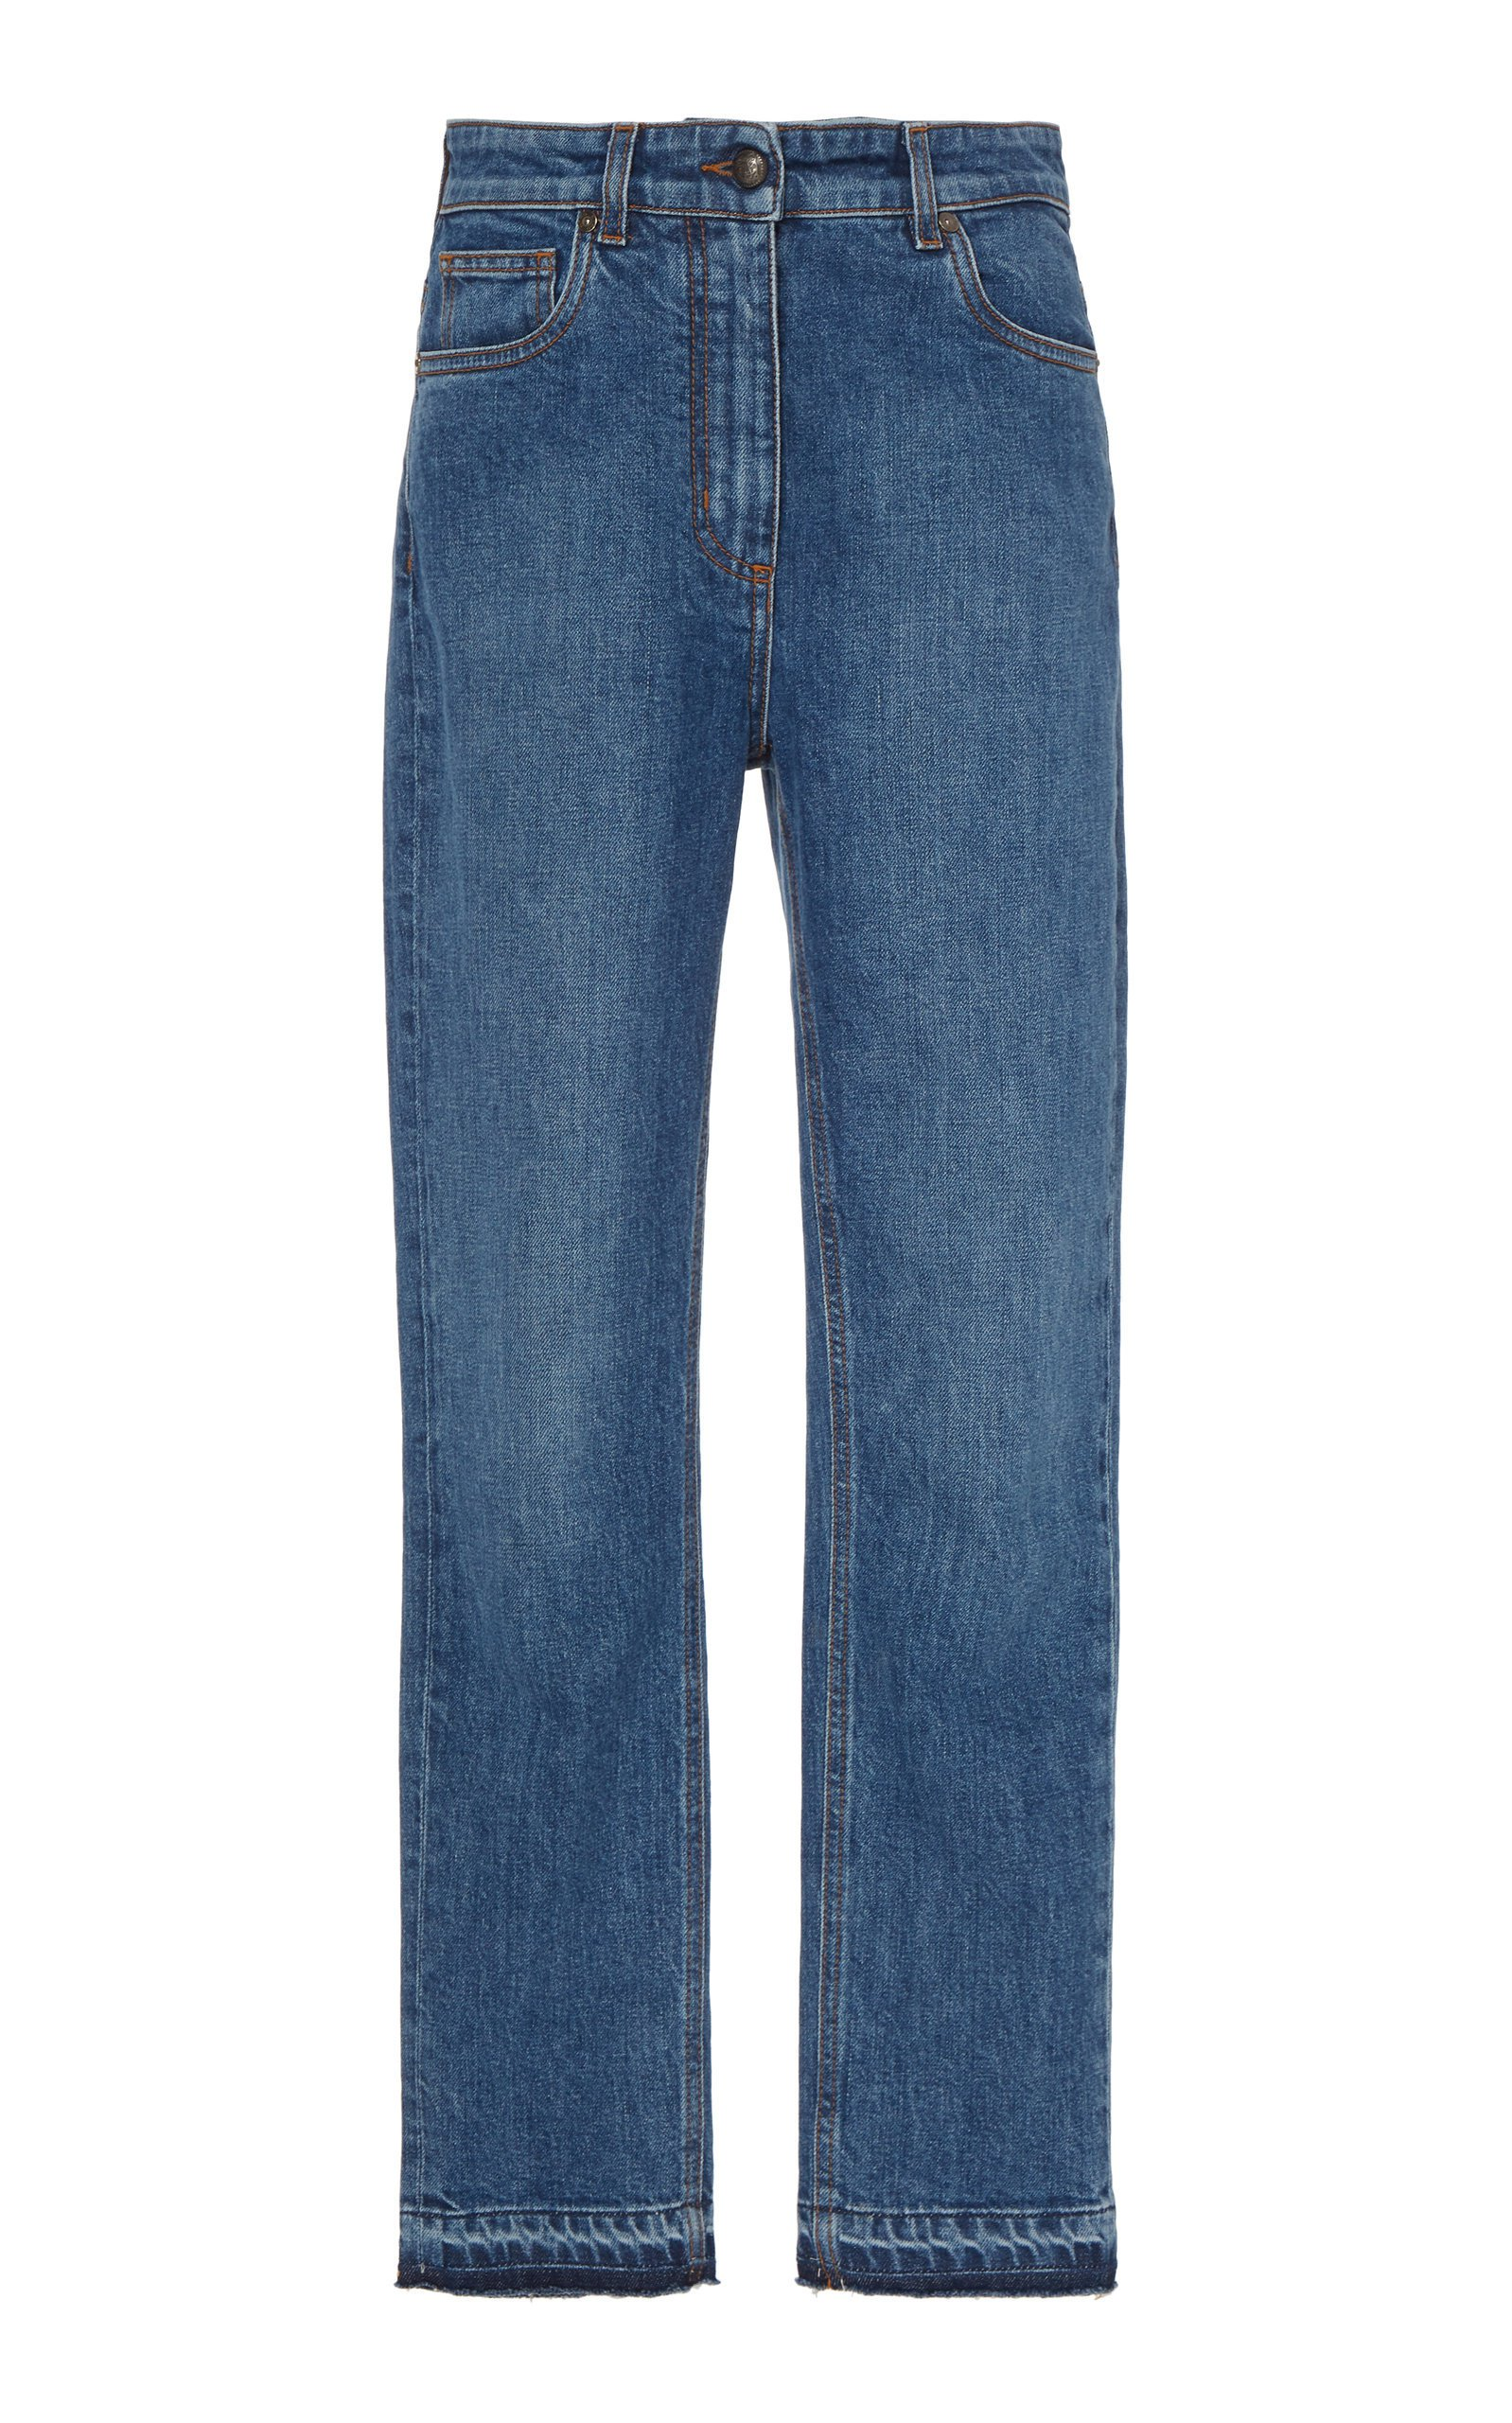 Etro High-Rise Skinny Cropped Ankle Jeans